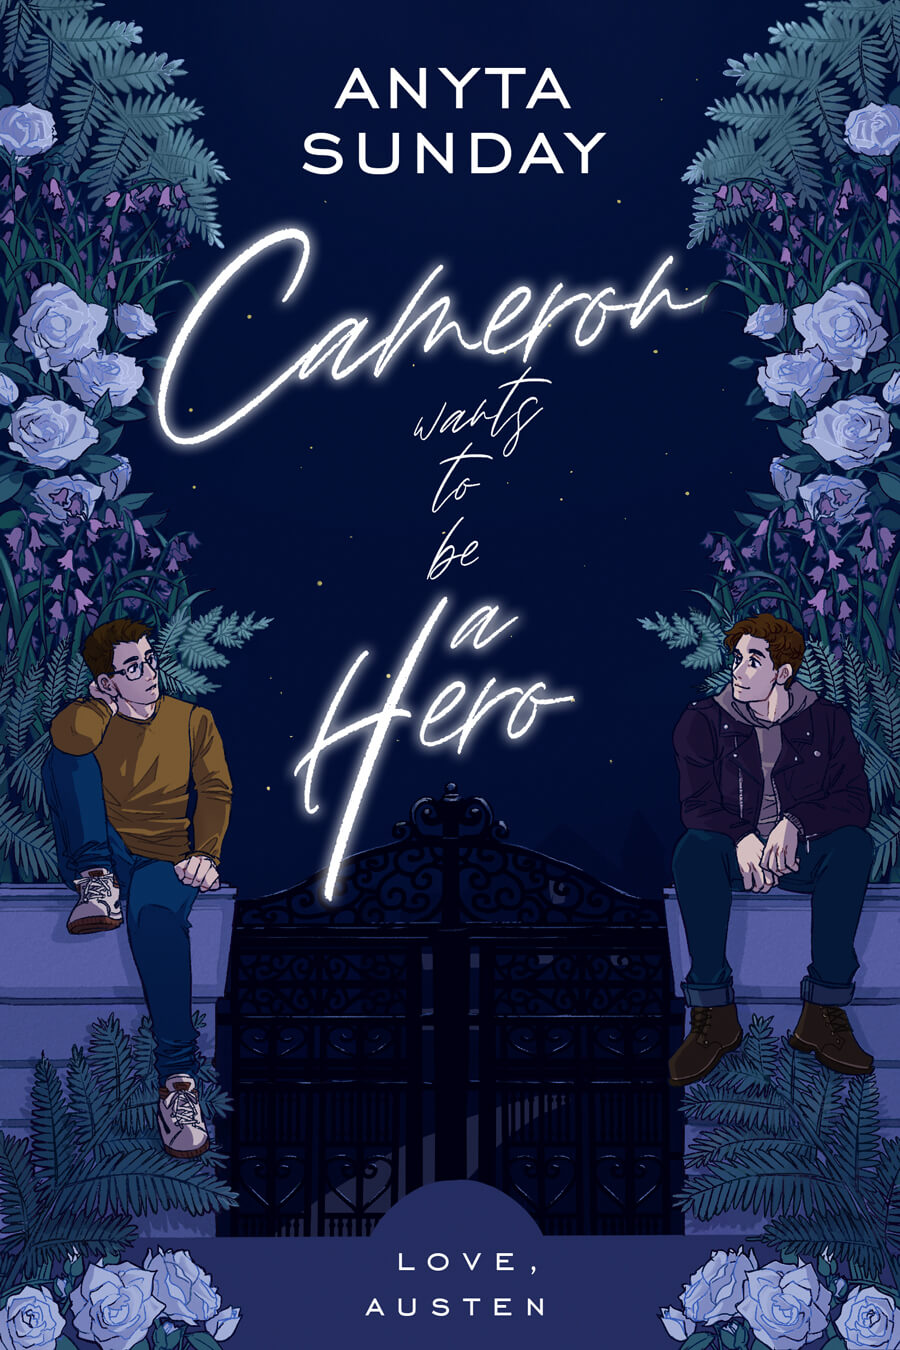 Cameron Wants To Be A Hero by Anyta Sunday - a retelling of Jane Austen's Northanger Abbey